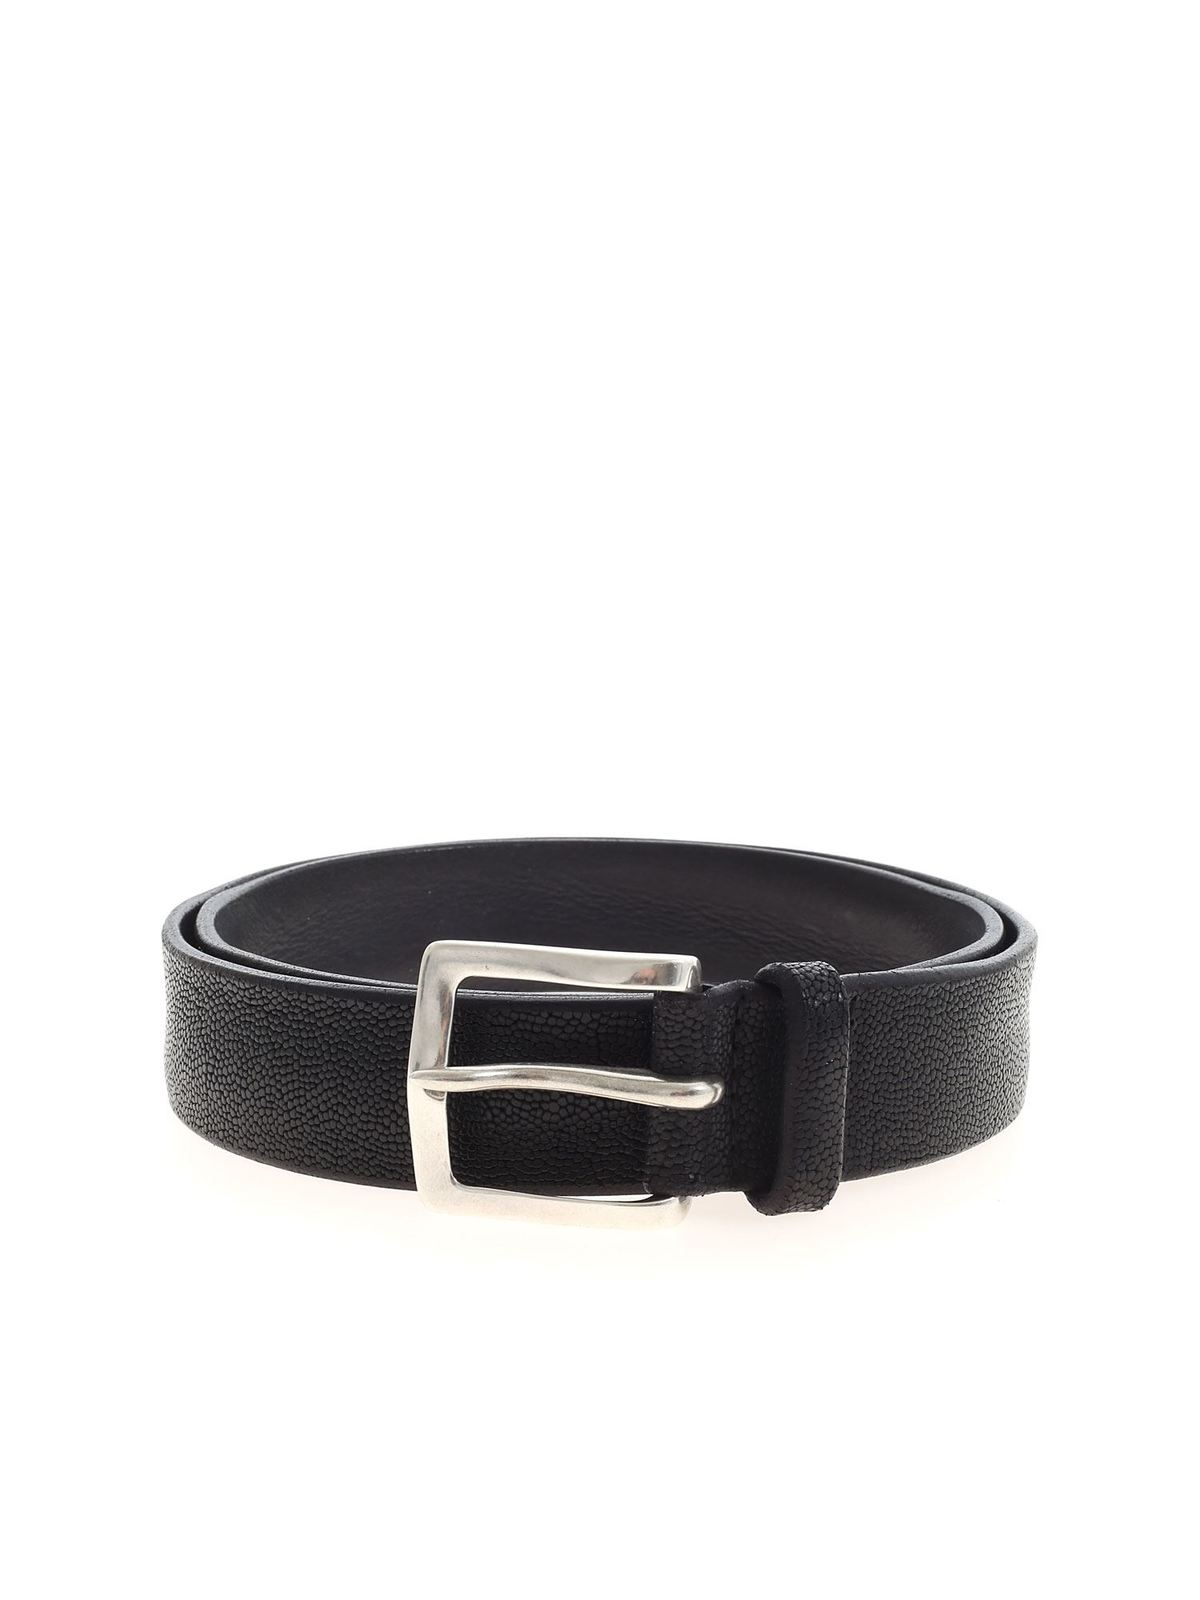 Orciani TEXTURED LEATHER BELT IN BLACK